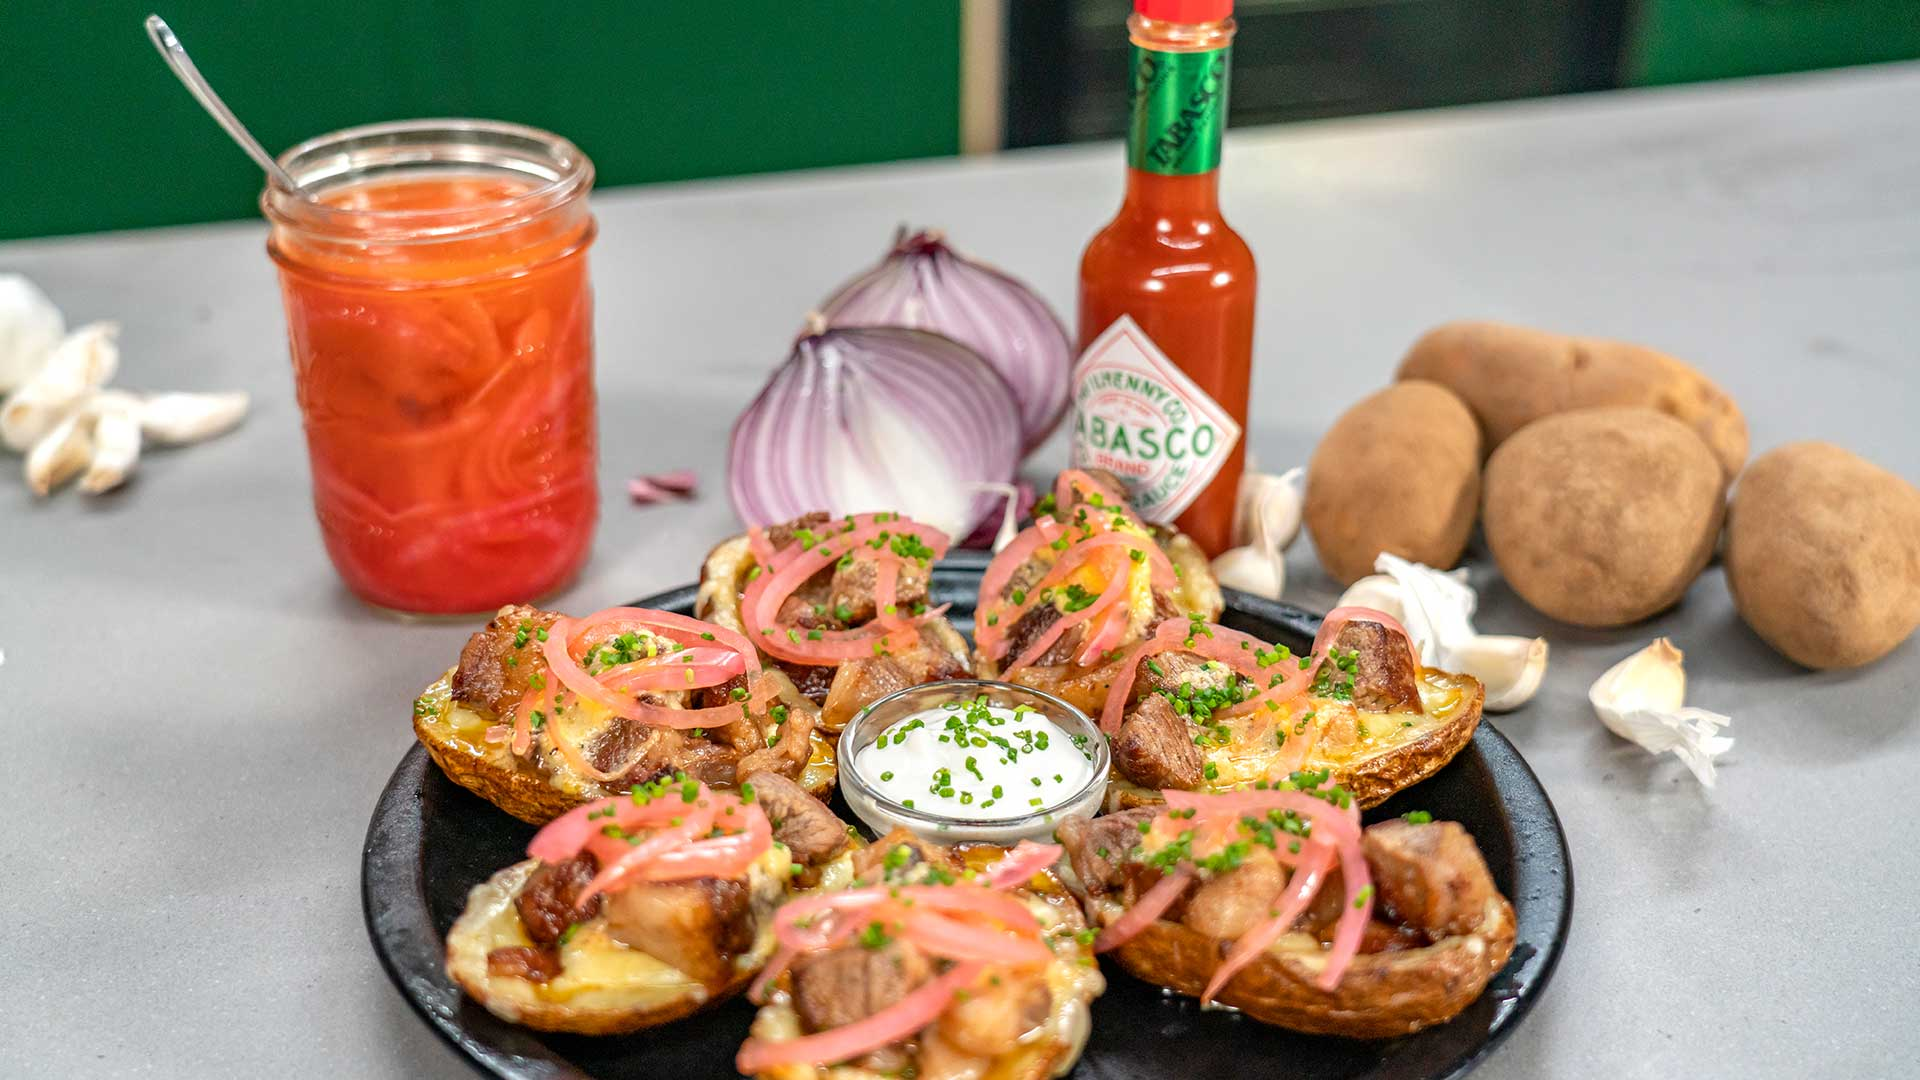 Steak & Cheese Potato Skins with Roasted Garlic and TABASCO® Sauce Compound Butter